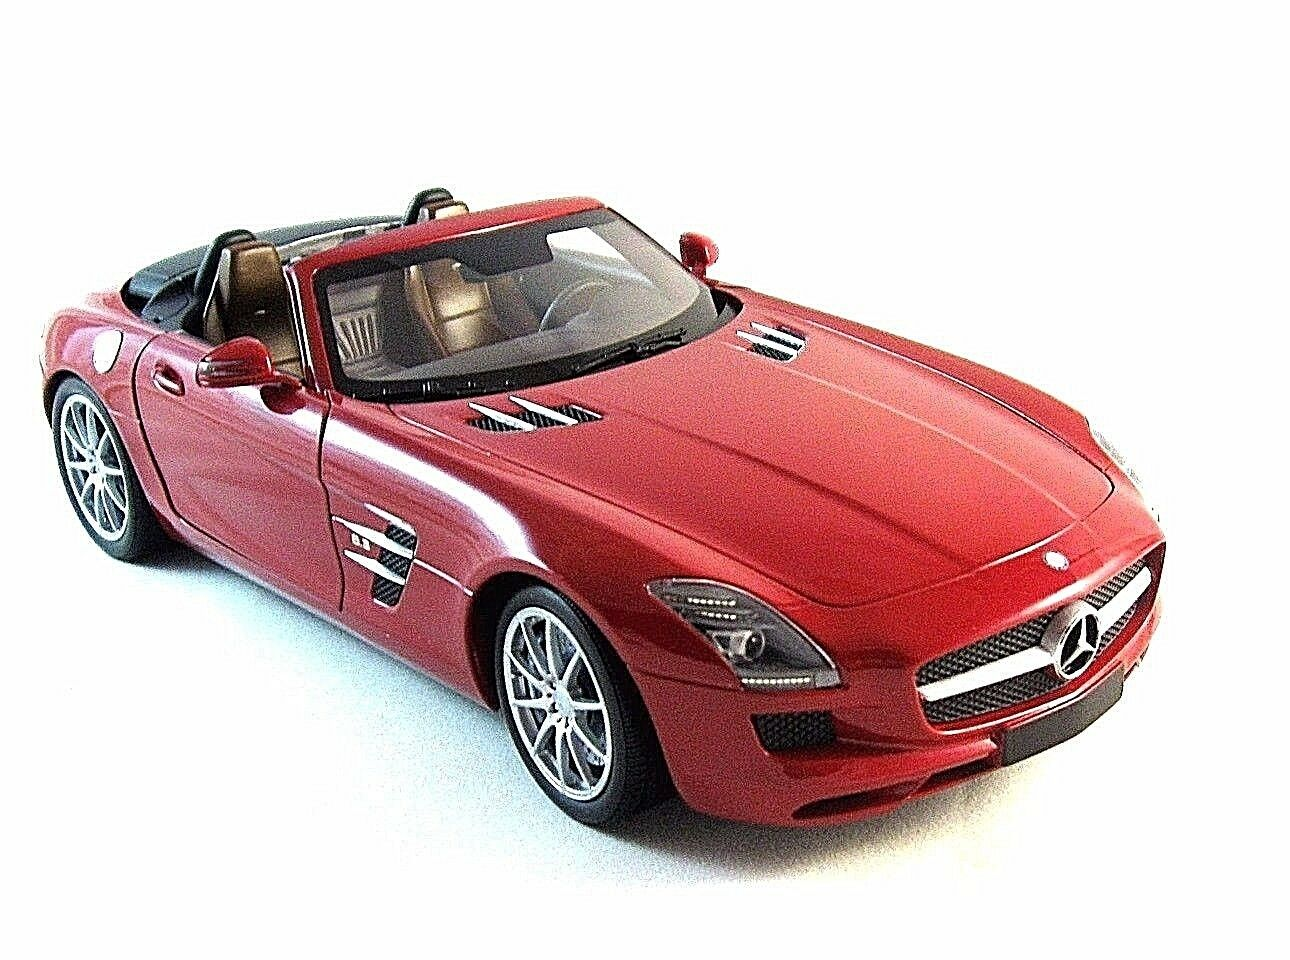 Mercedes Benz Sls Roadster 2011 Minichamps 1 18 Diecast Collector's Coche Model